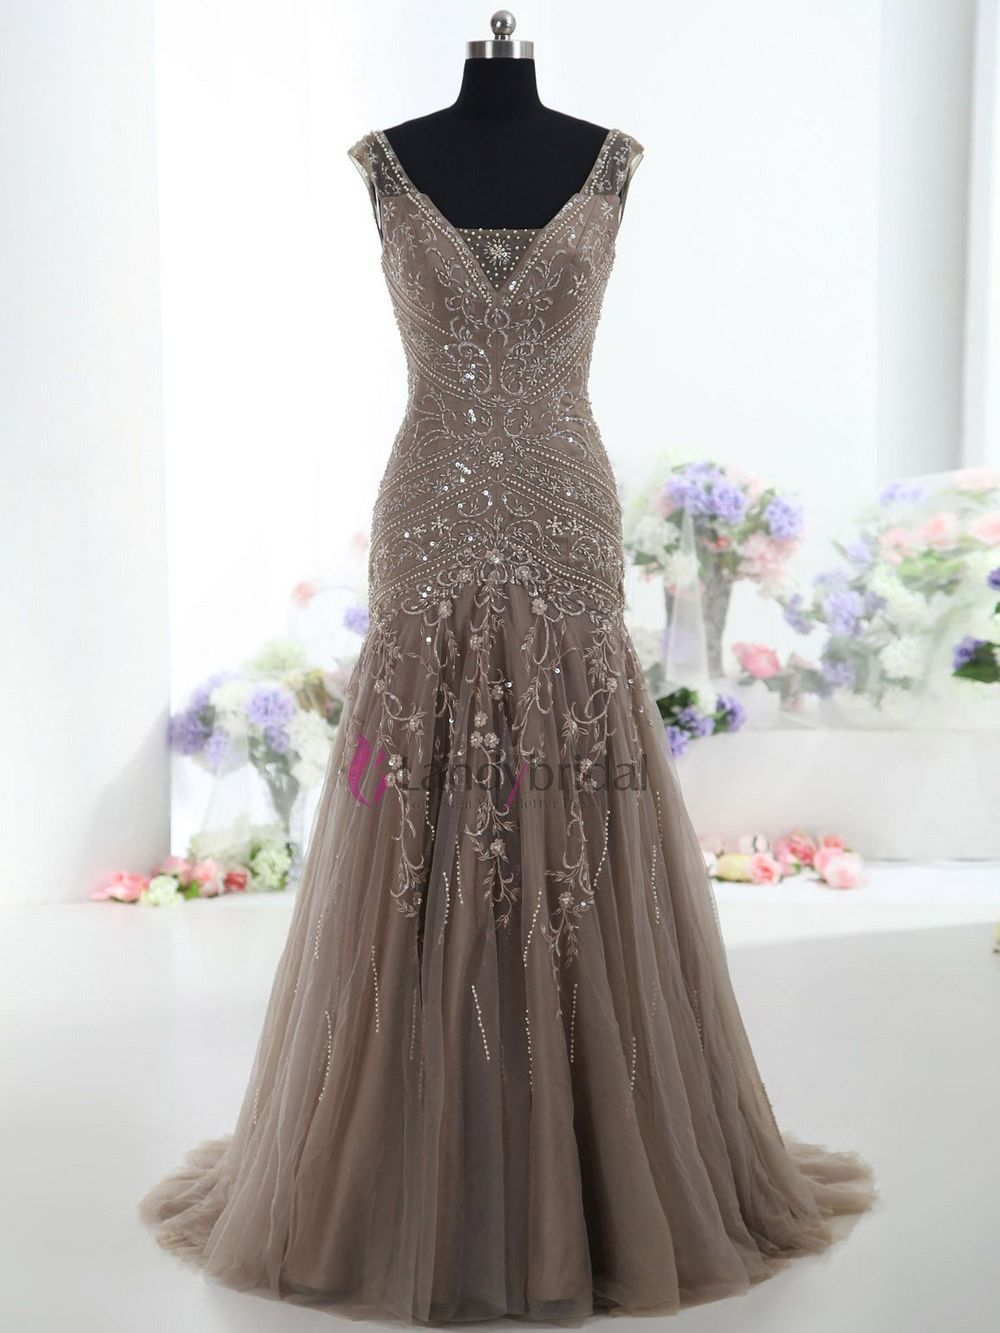 V Neck Chocolate White Champagne Lavender Ivory Handmade Embroidery With Beadings Trumpet Wedding Dress 2017 Bmmc0009 In Dresses From Weddings